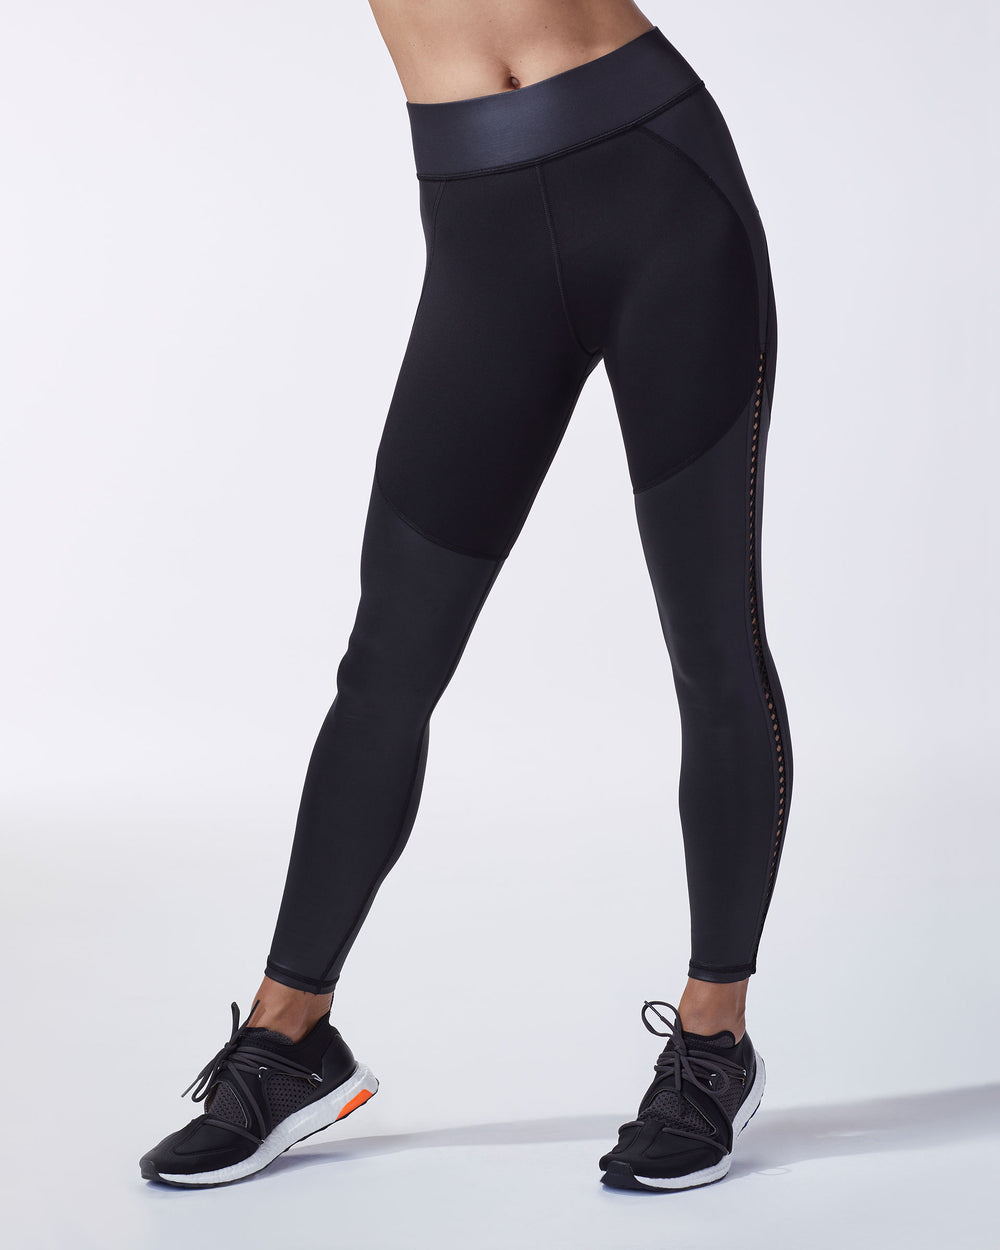 Barre Legging - Liquid Black